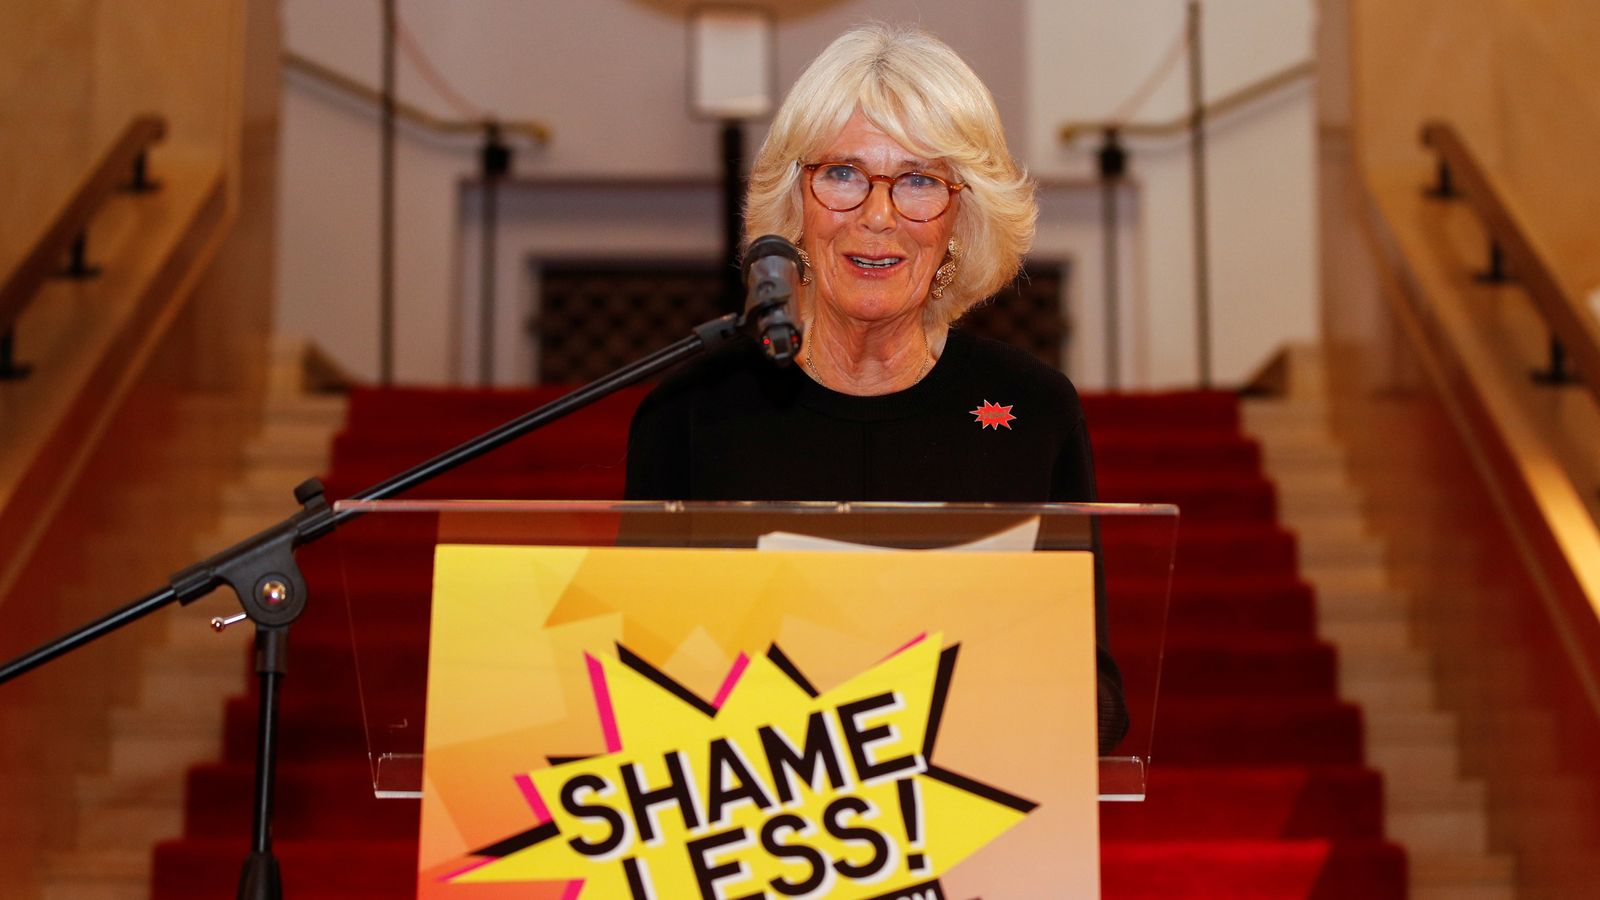 Camilla condemns how society has come to believe 'violence against women is normal'